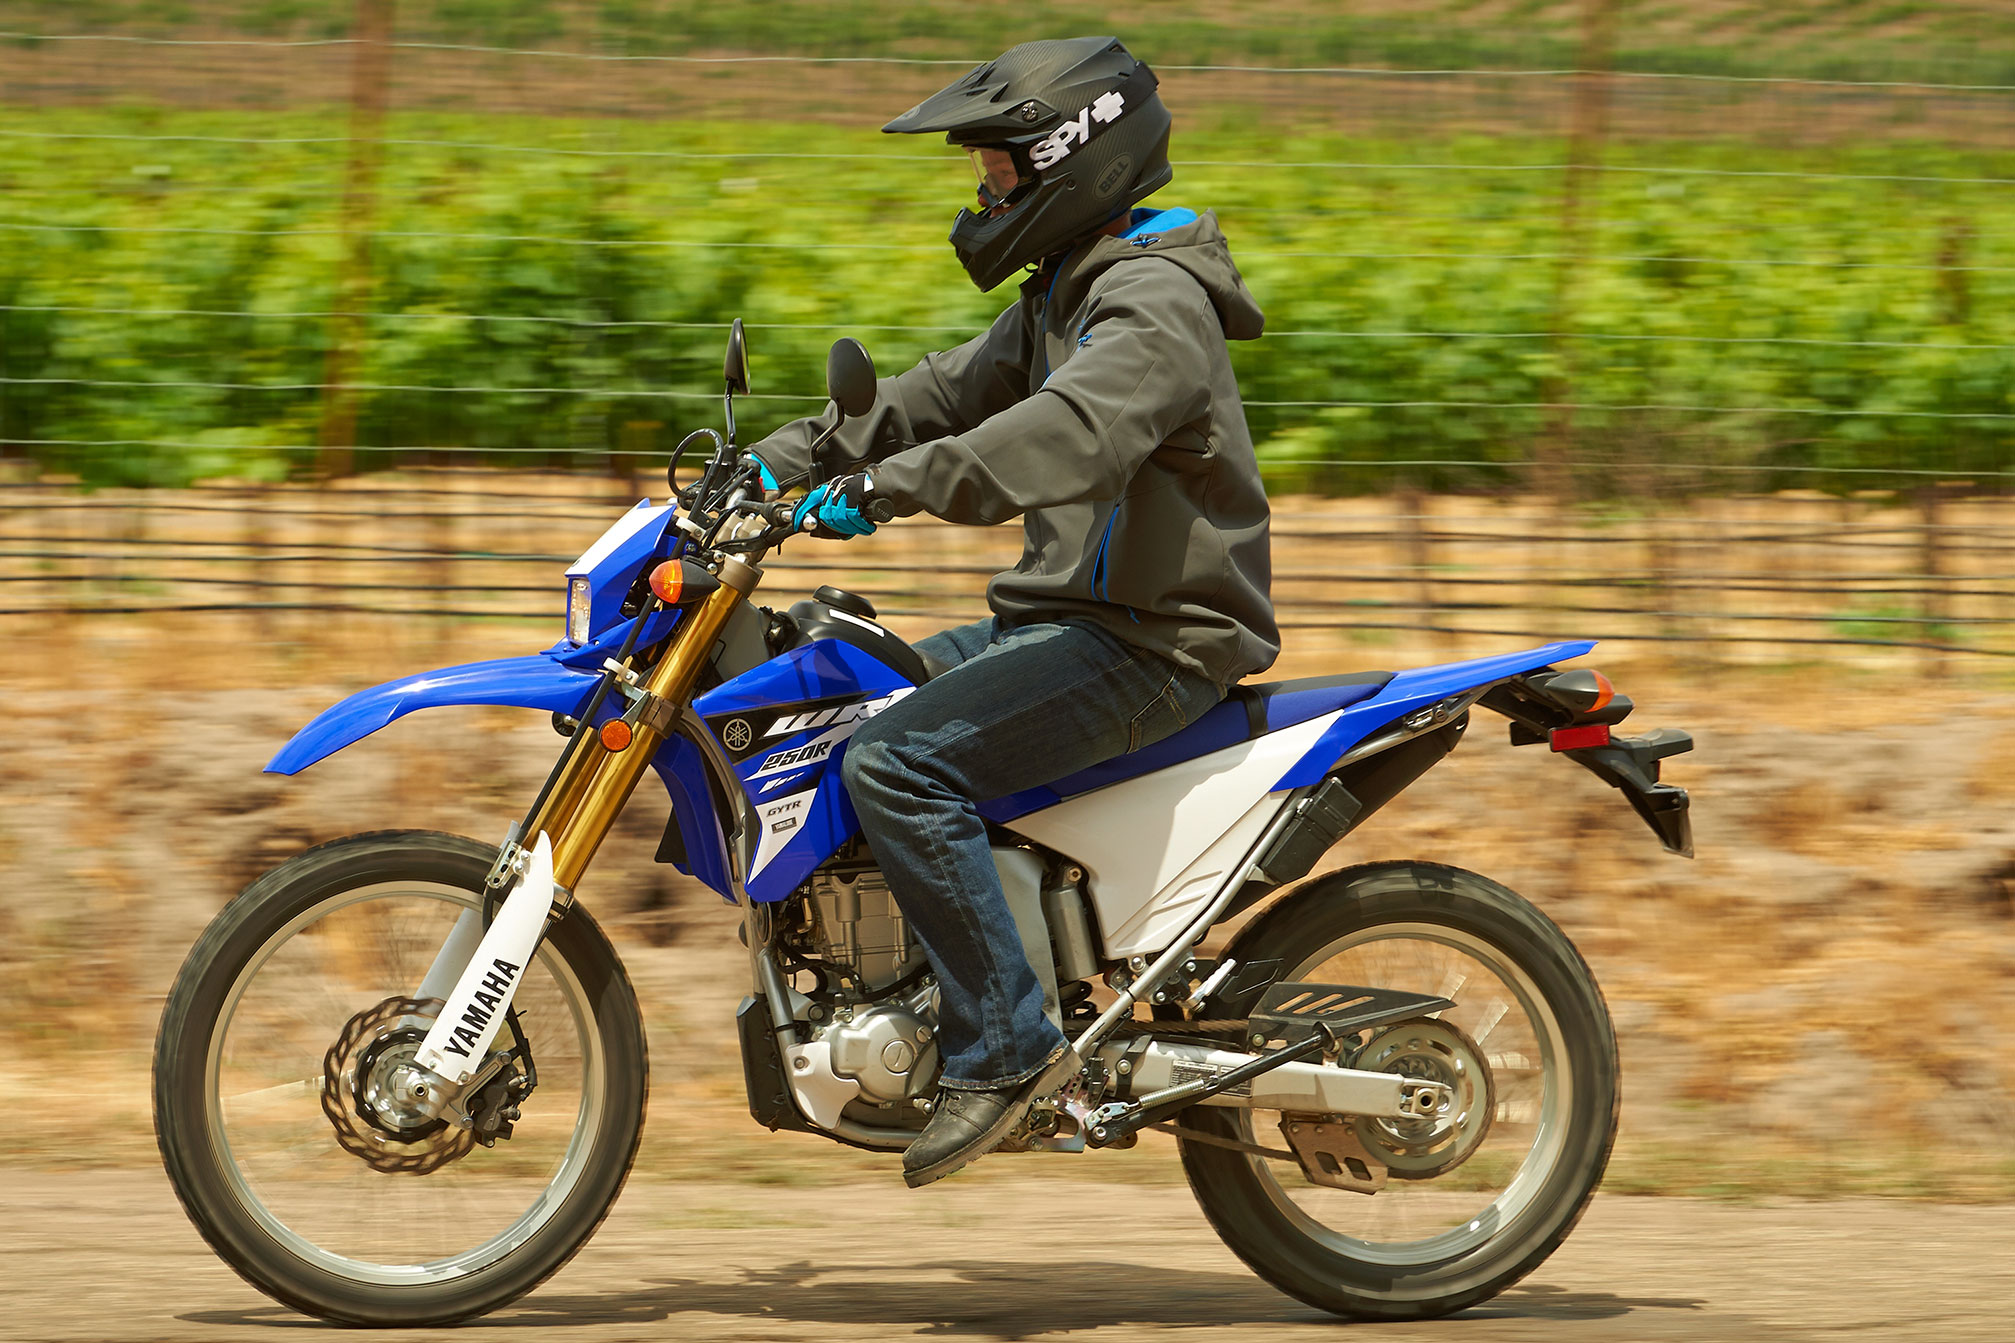 2015 Yamaha WR250R Review